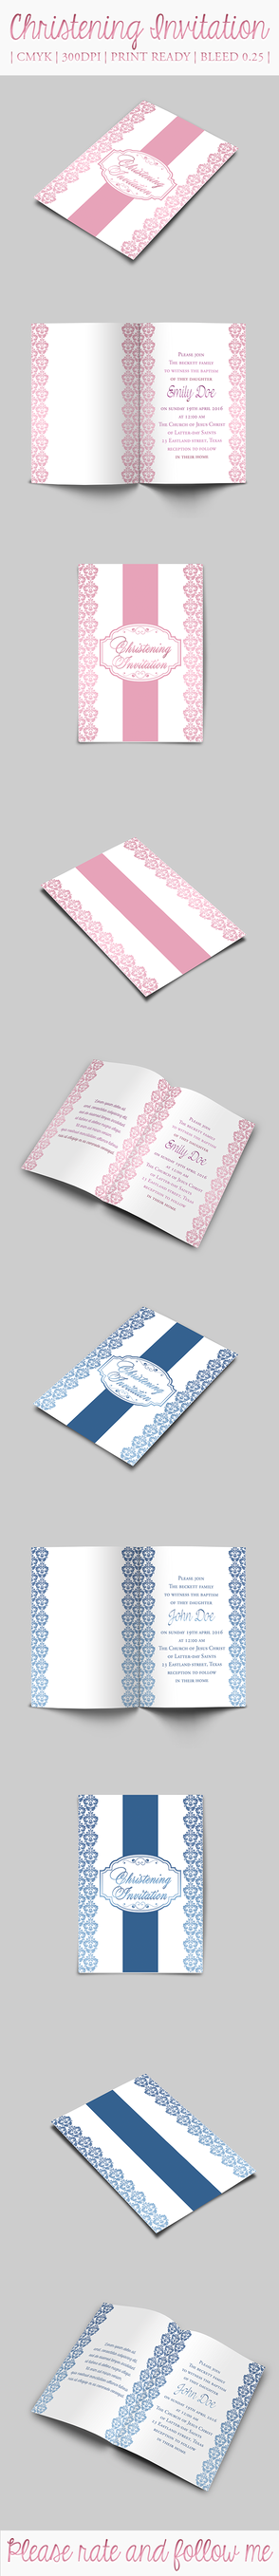 Christening Invitation by Anuya